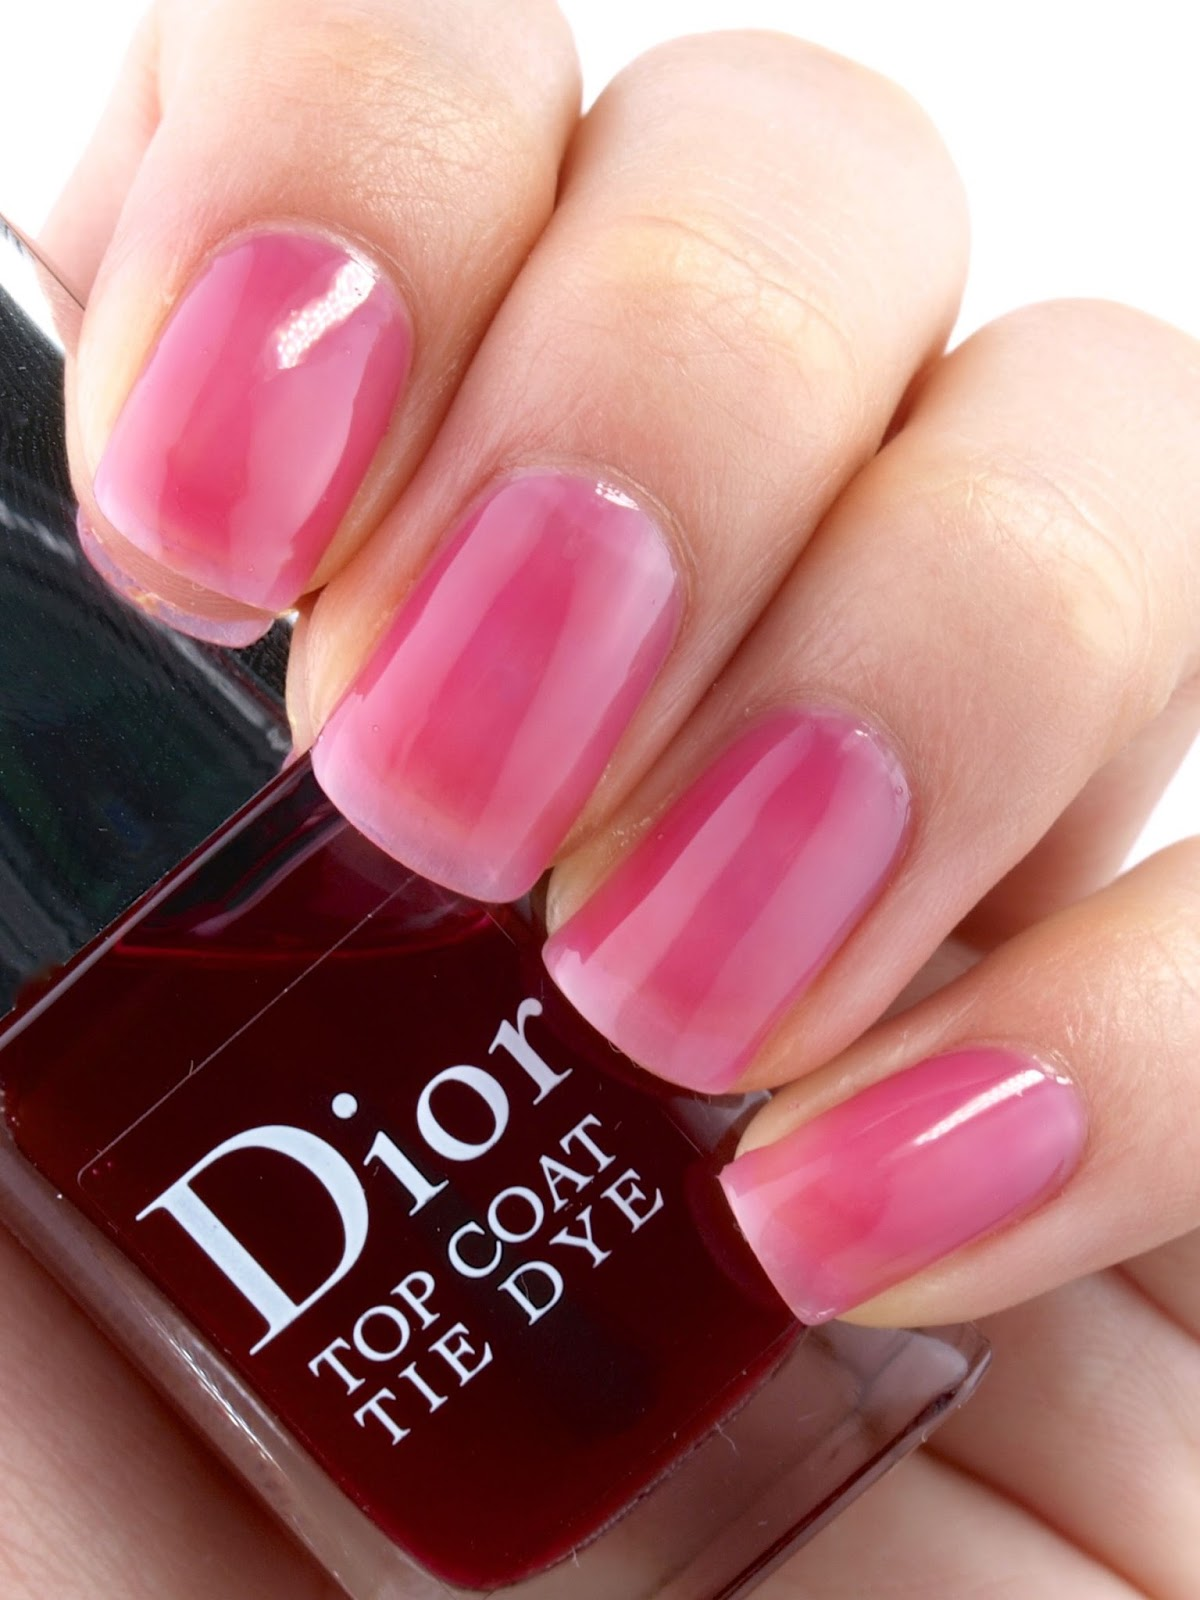 Dior Summer 2015 Tie Dye Collection Nail Polish: Review and ...